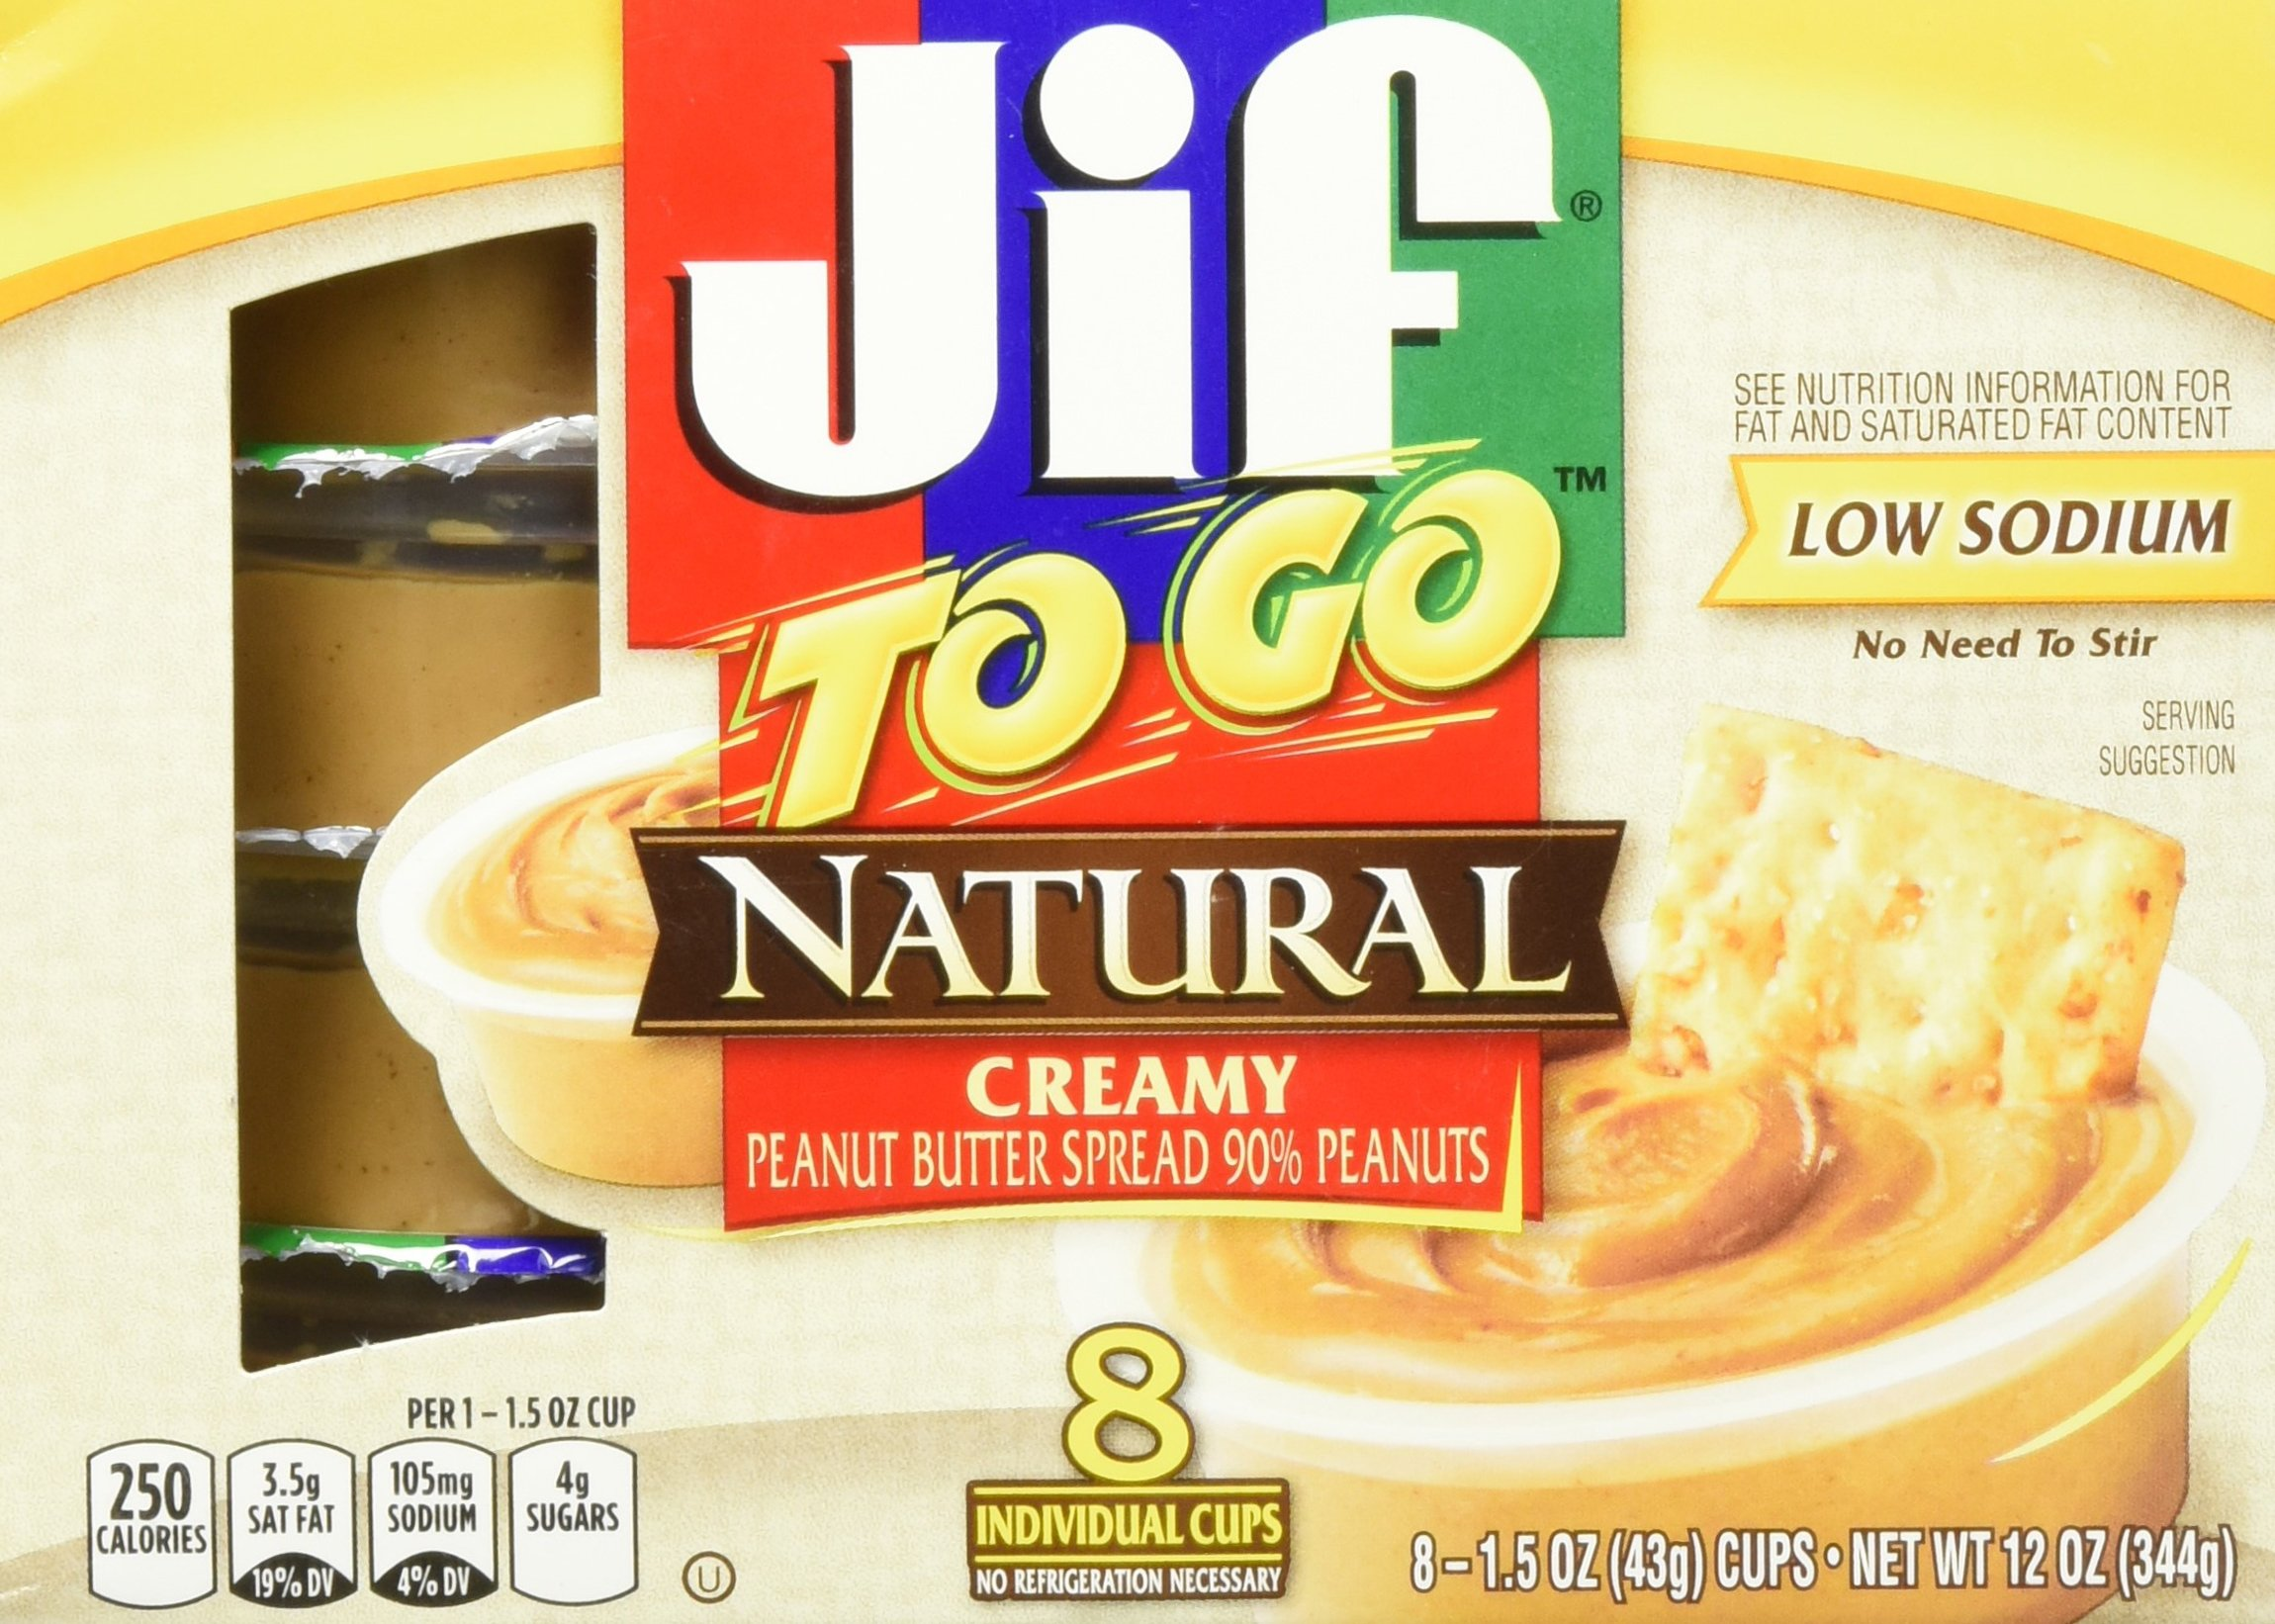 Jif to Go Natural Creamy Peanut Butter 8 individual cups (Pack of 3)